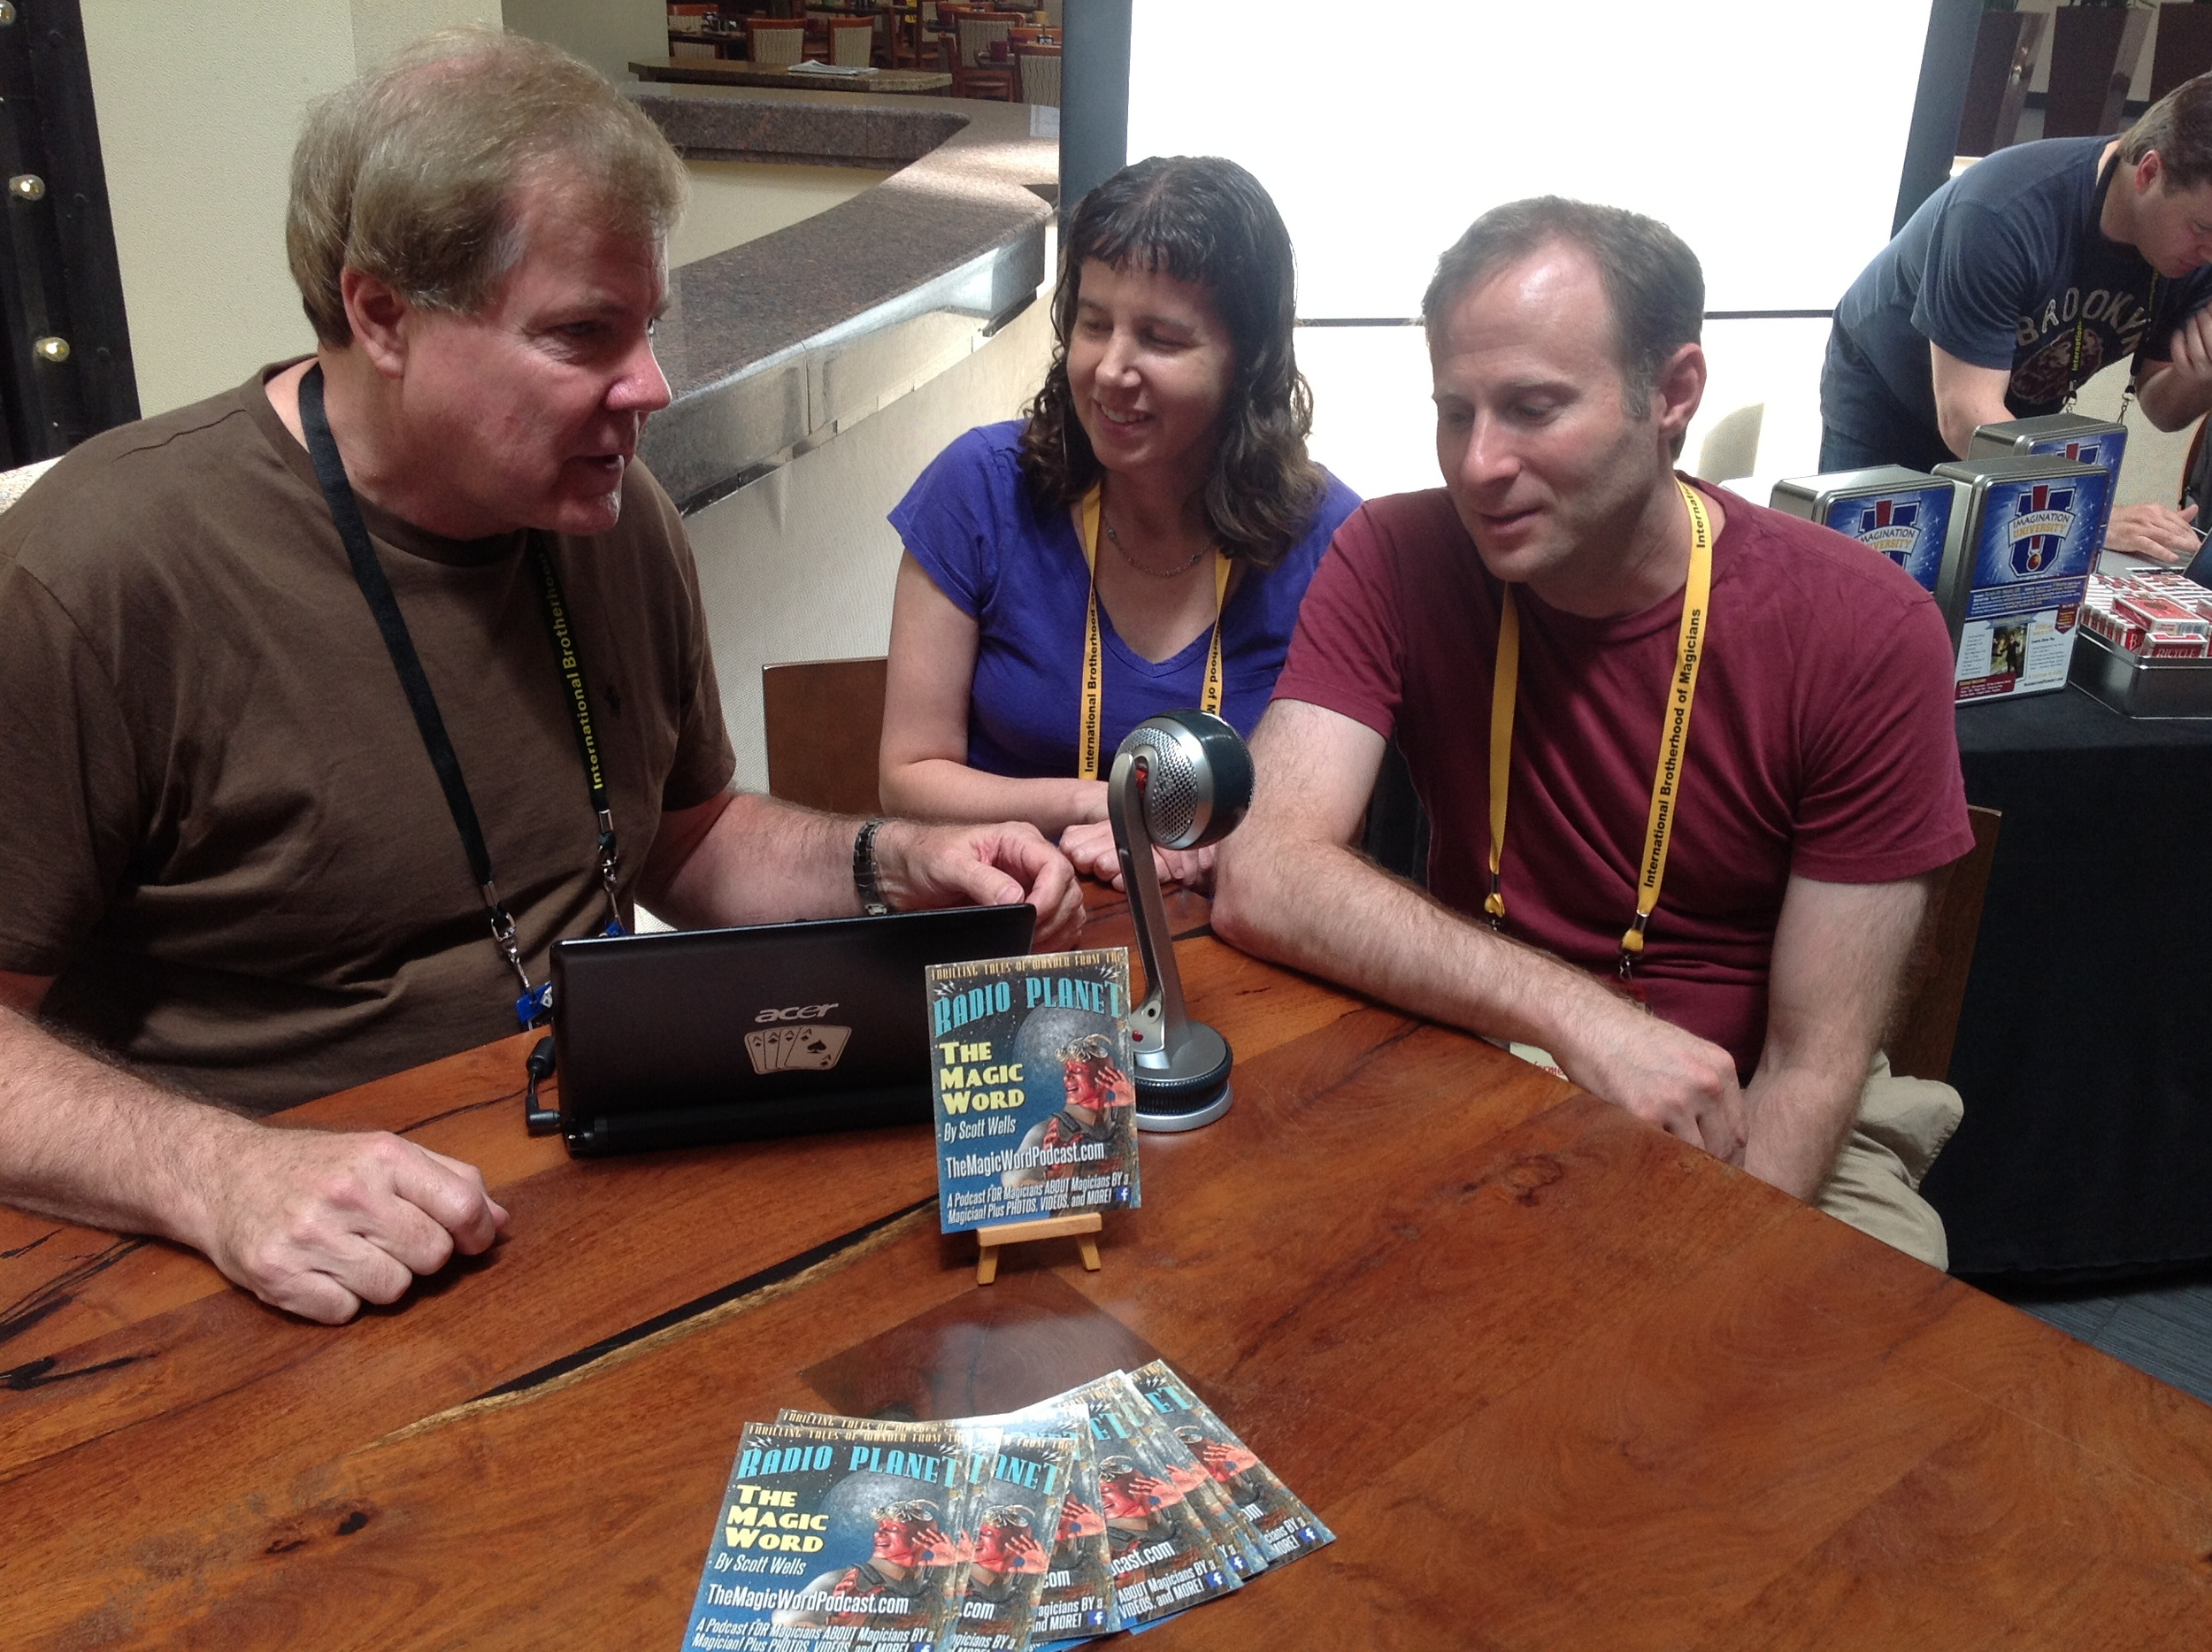 Podcasting from the floor of the dealers' room with Joe Gold and Tammy Caplan